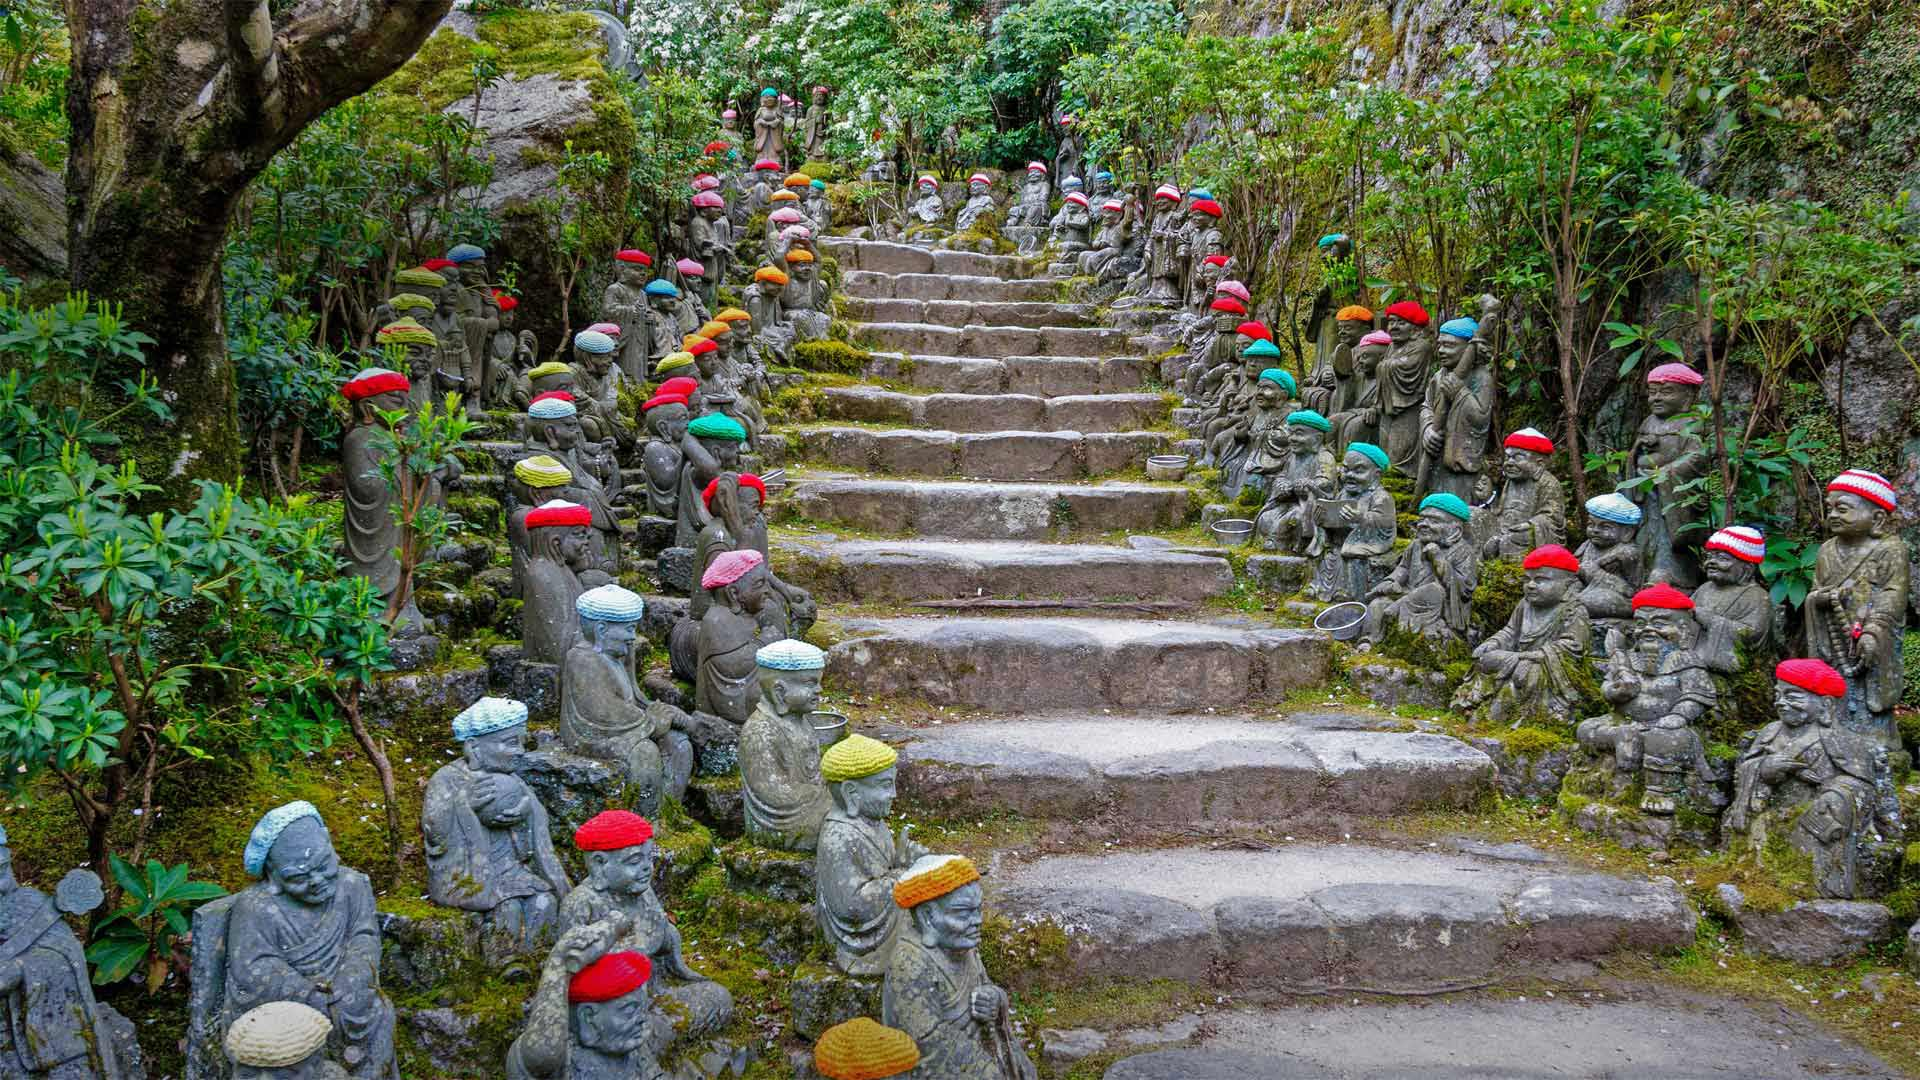 Rakan statues at Daisho-in Temple, Miyajima, Japan (© Malcolm Fairman/Alamy)(Bing United States)